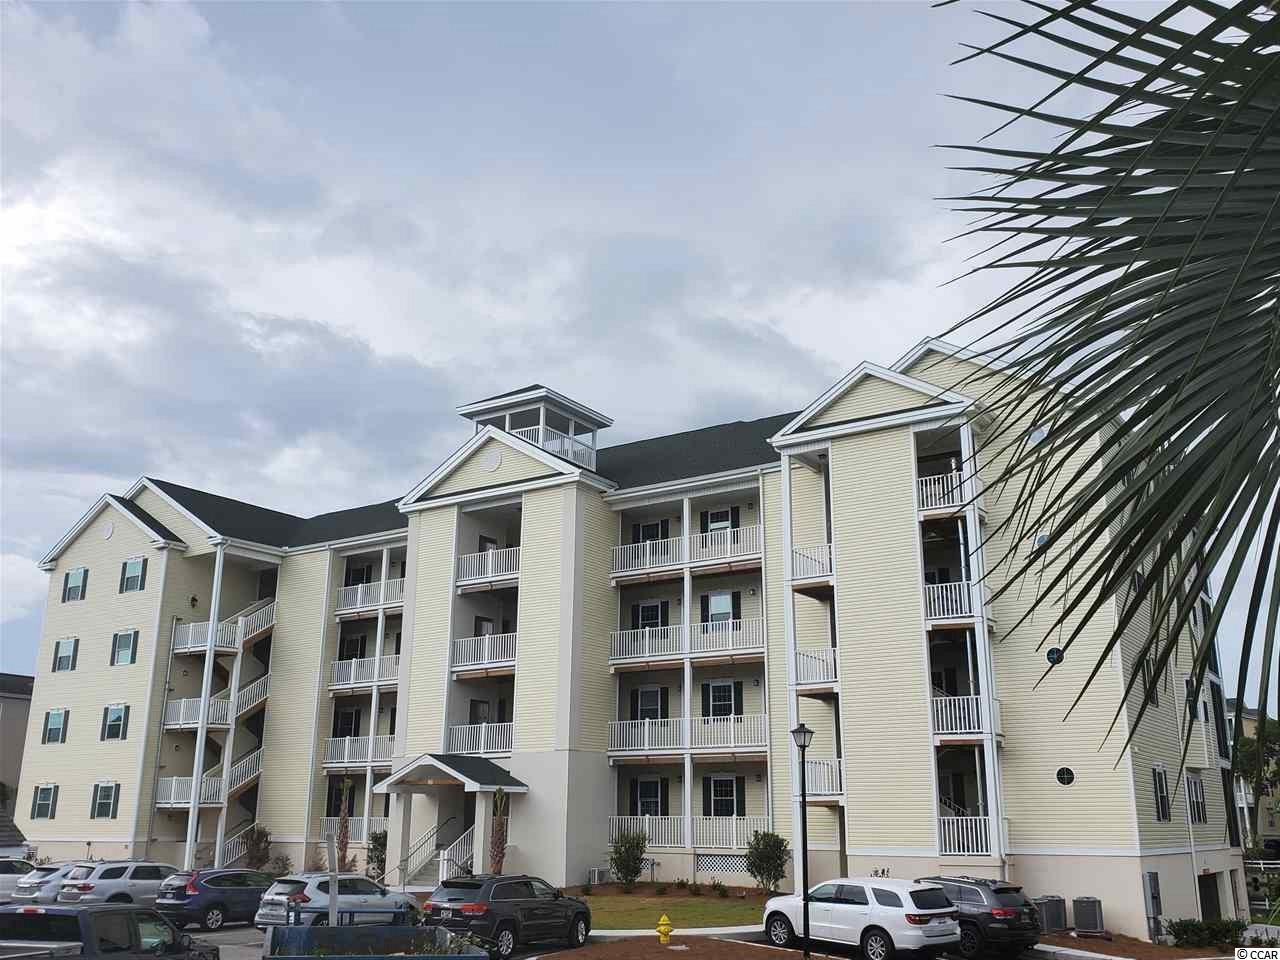 MLS#:1618949 Mid-Rise 4-6 Stories 601 Hillside Dr. North #2524